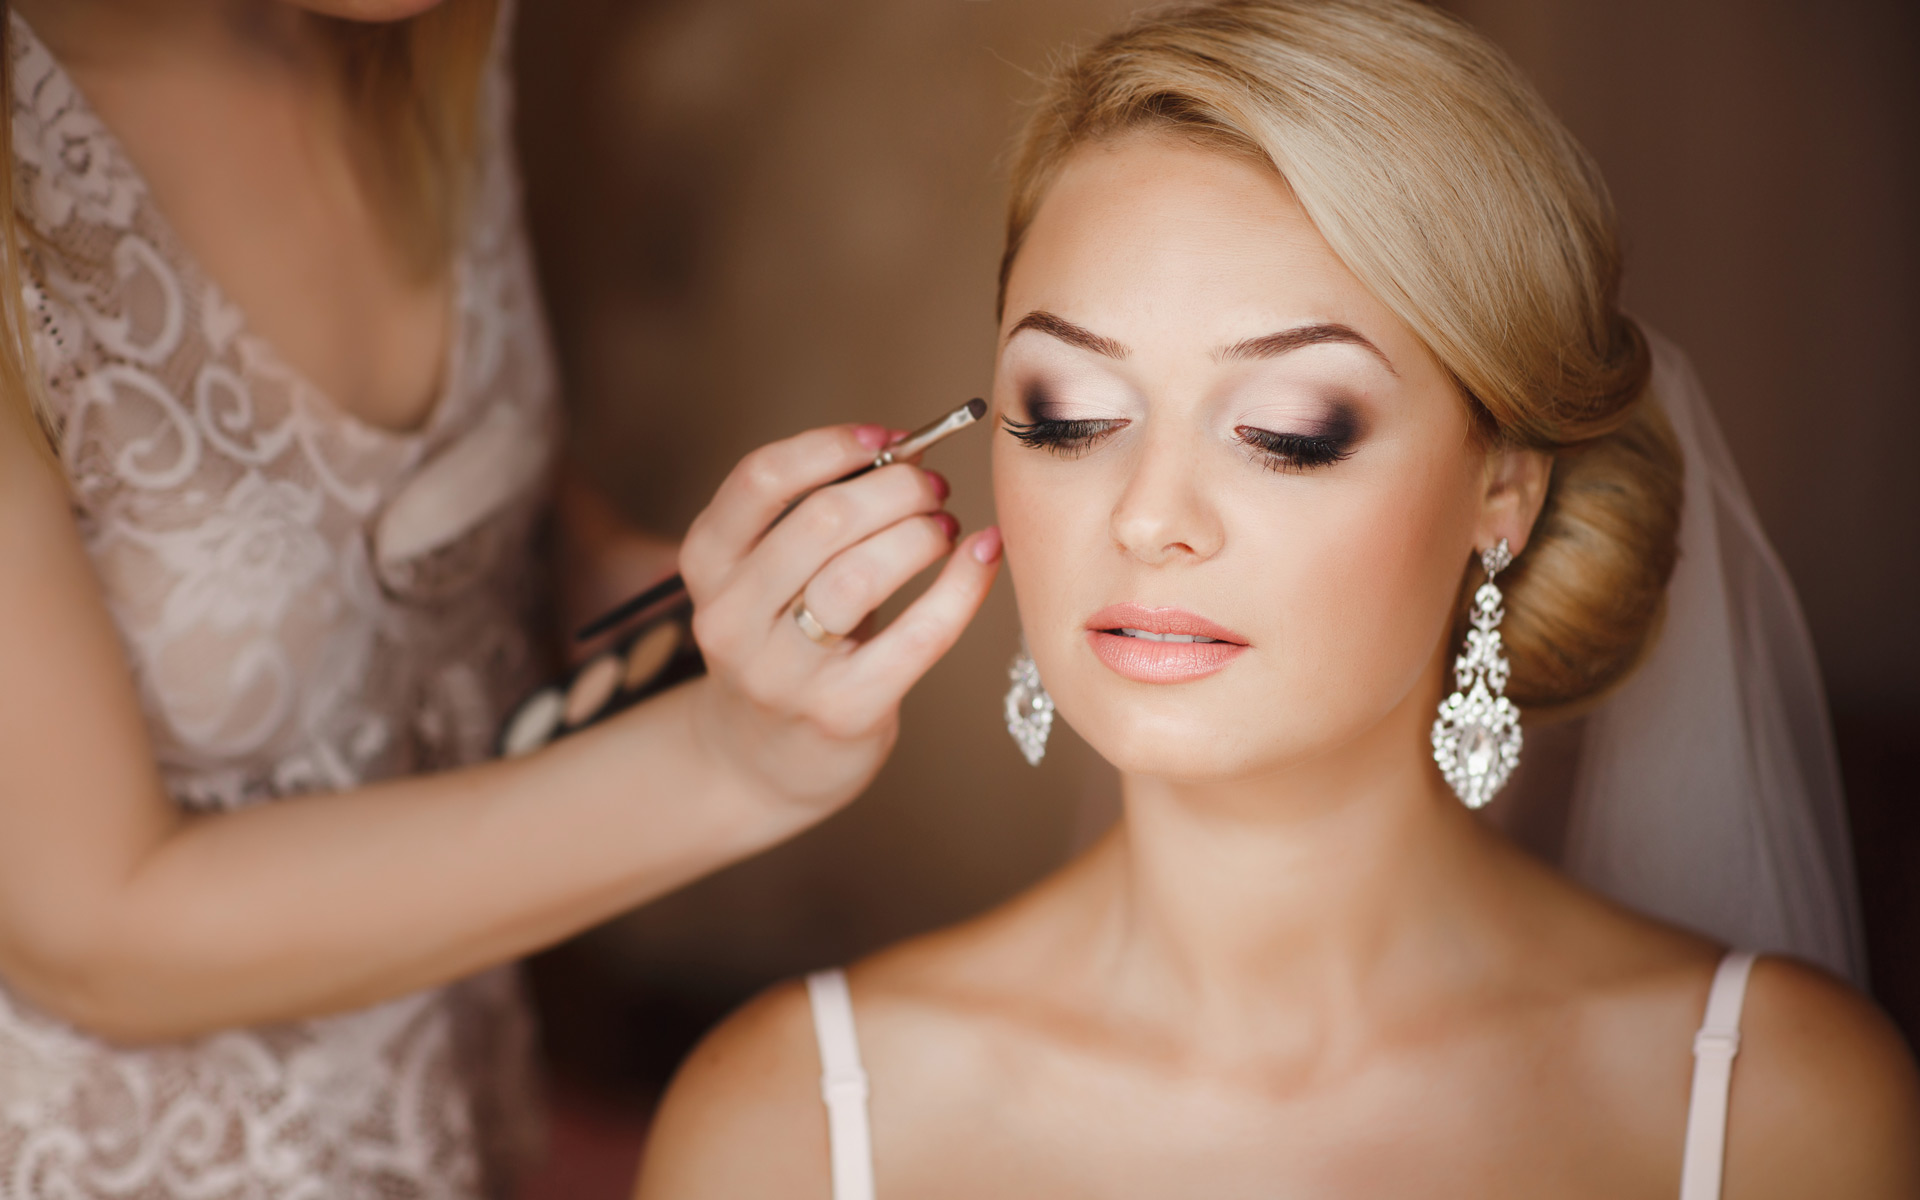 Inland Empire Bridal Hair and Make-Up Service: Reasons Why People Love It